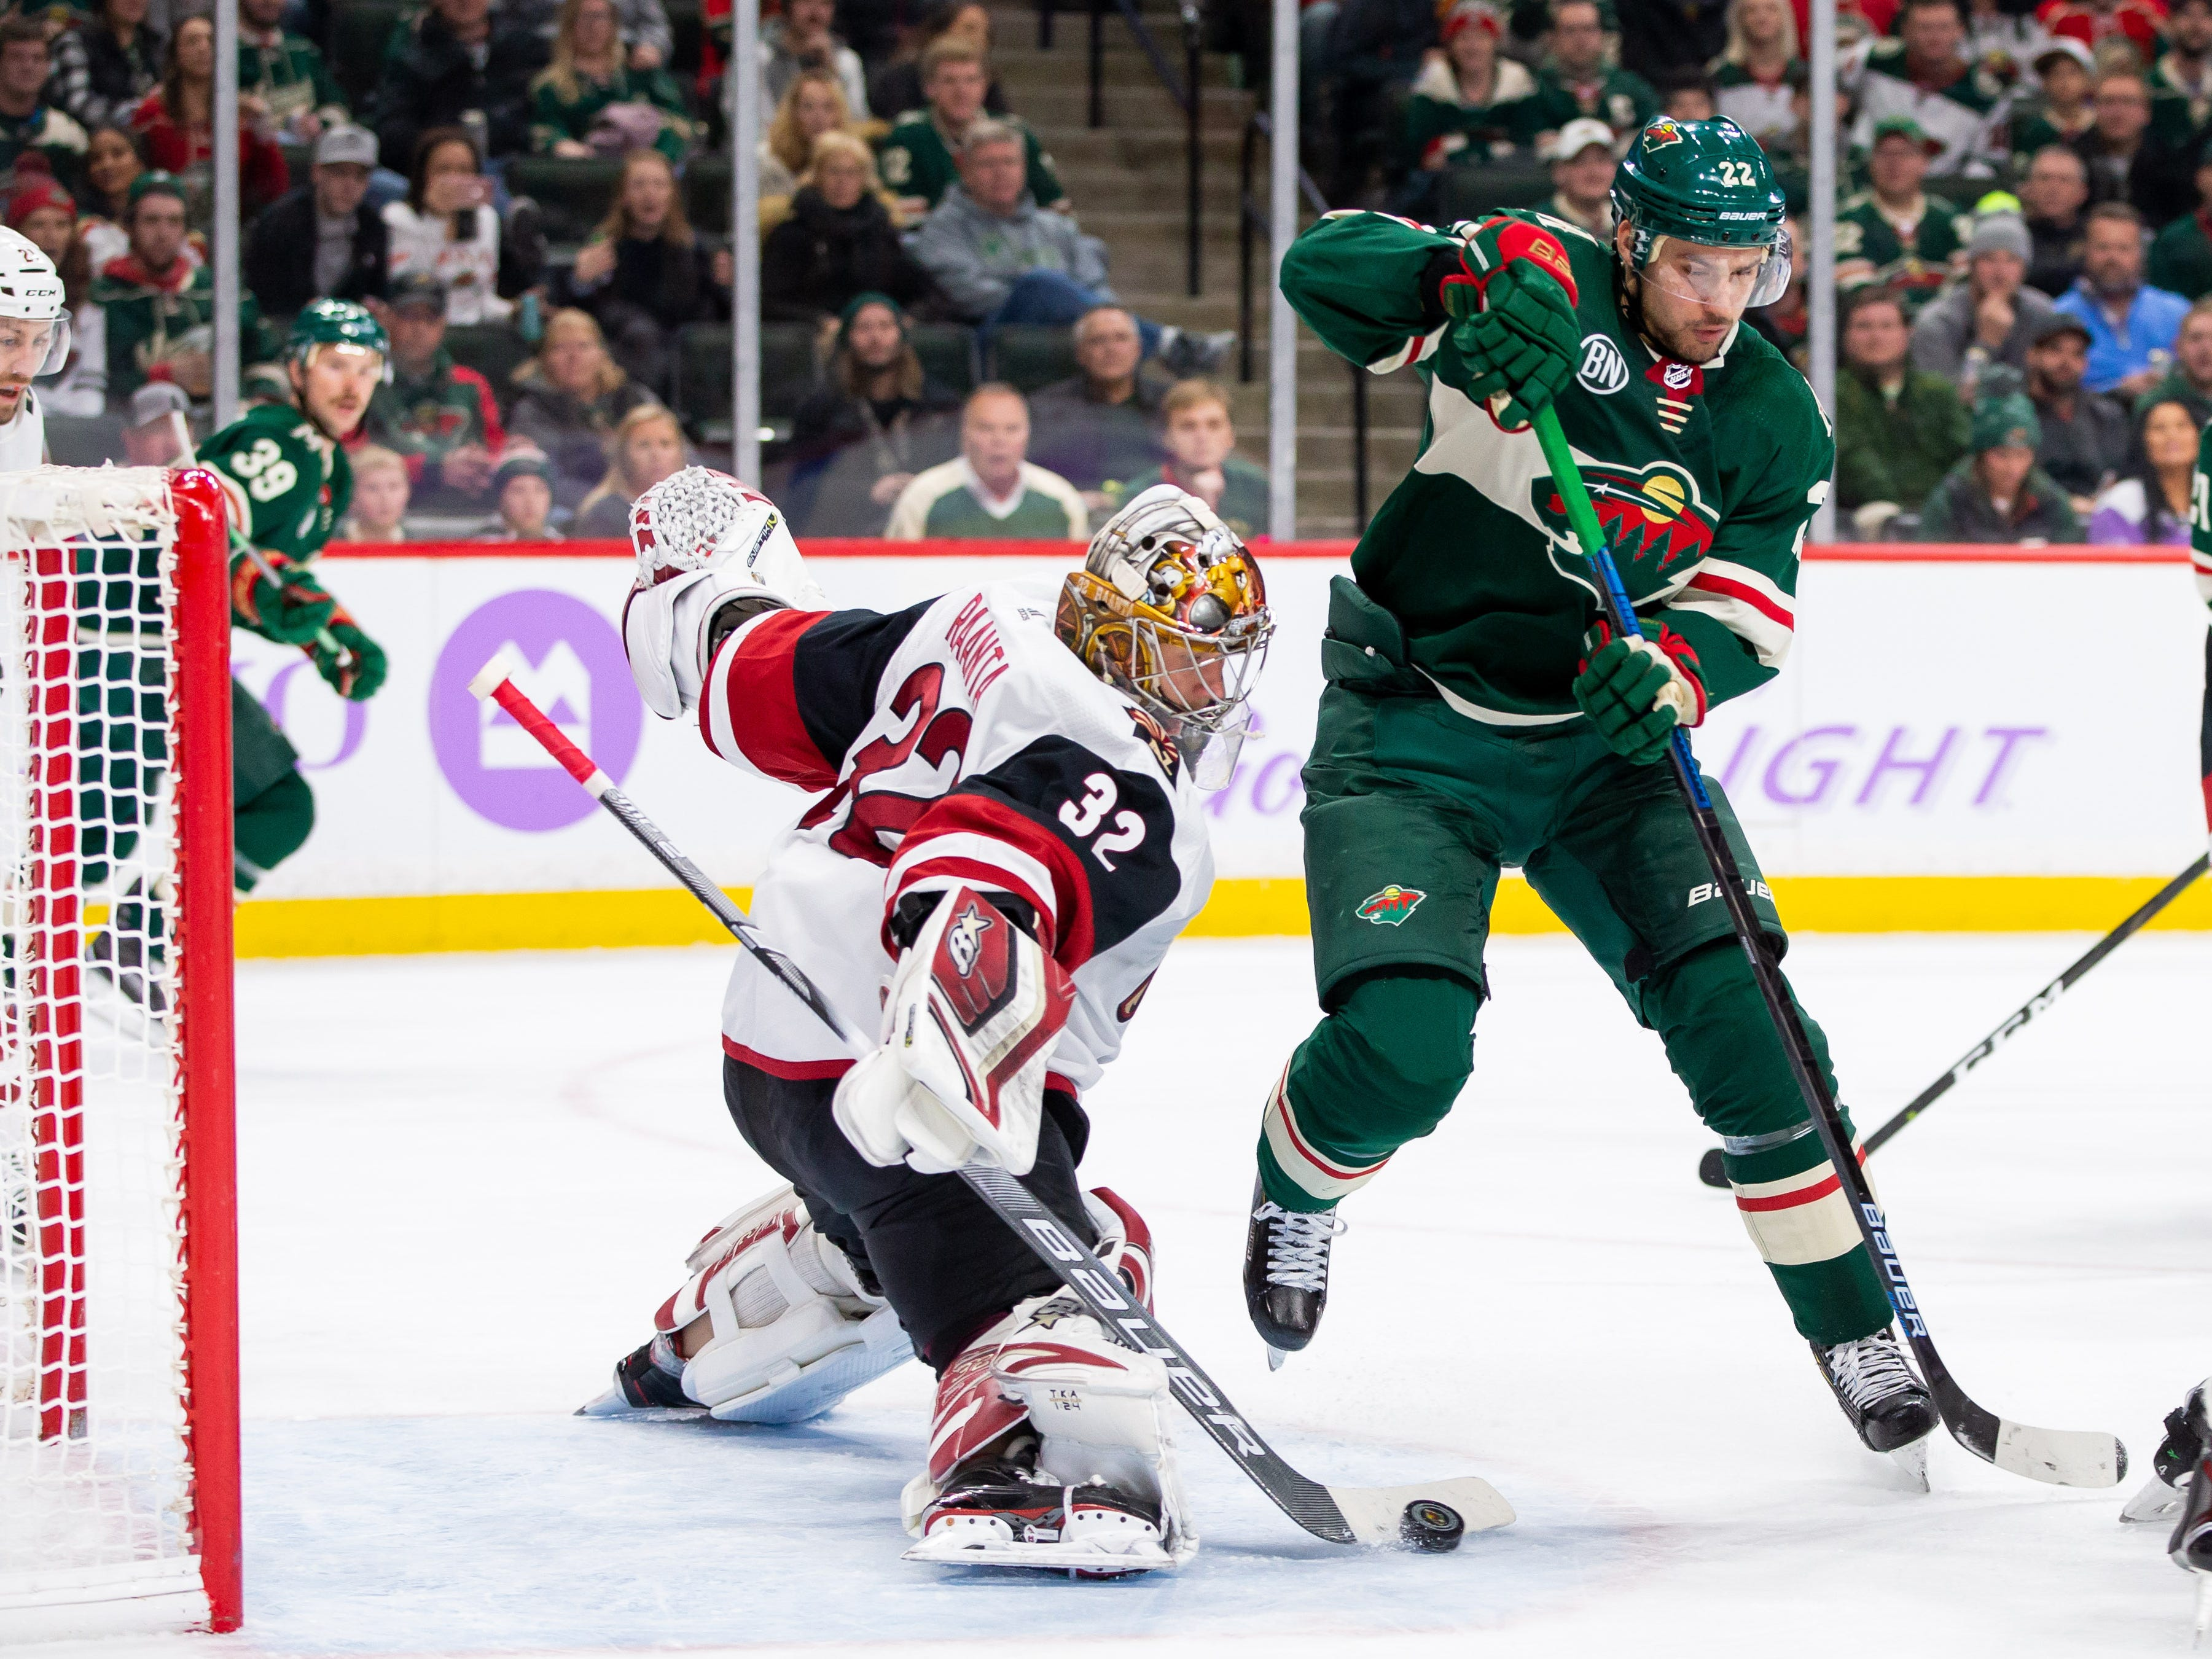 Nov 27, 2018; Saint Paul, MN, USA; Phoenix Coyotes goalie Antti Raanta (32) makes a save in the second period against Minnesota Wild forward Nino Niederreiter (22) at Xcel Energy Center. Mandatory Credit: Brad Rempel-USA TODAY Sports